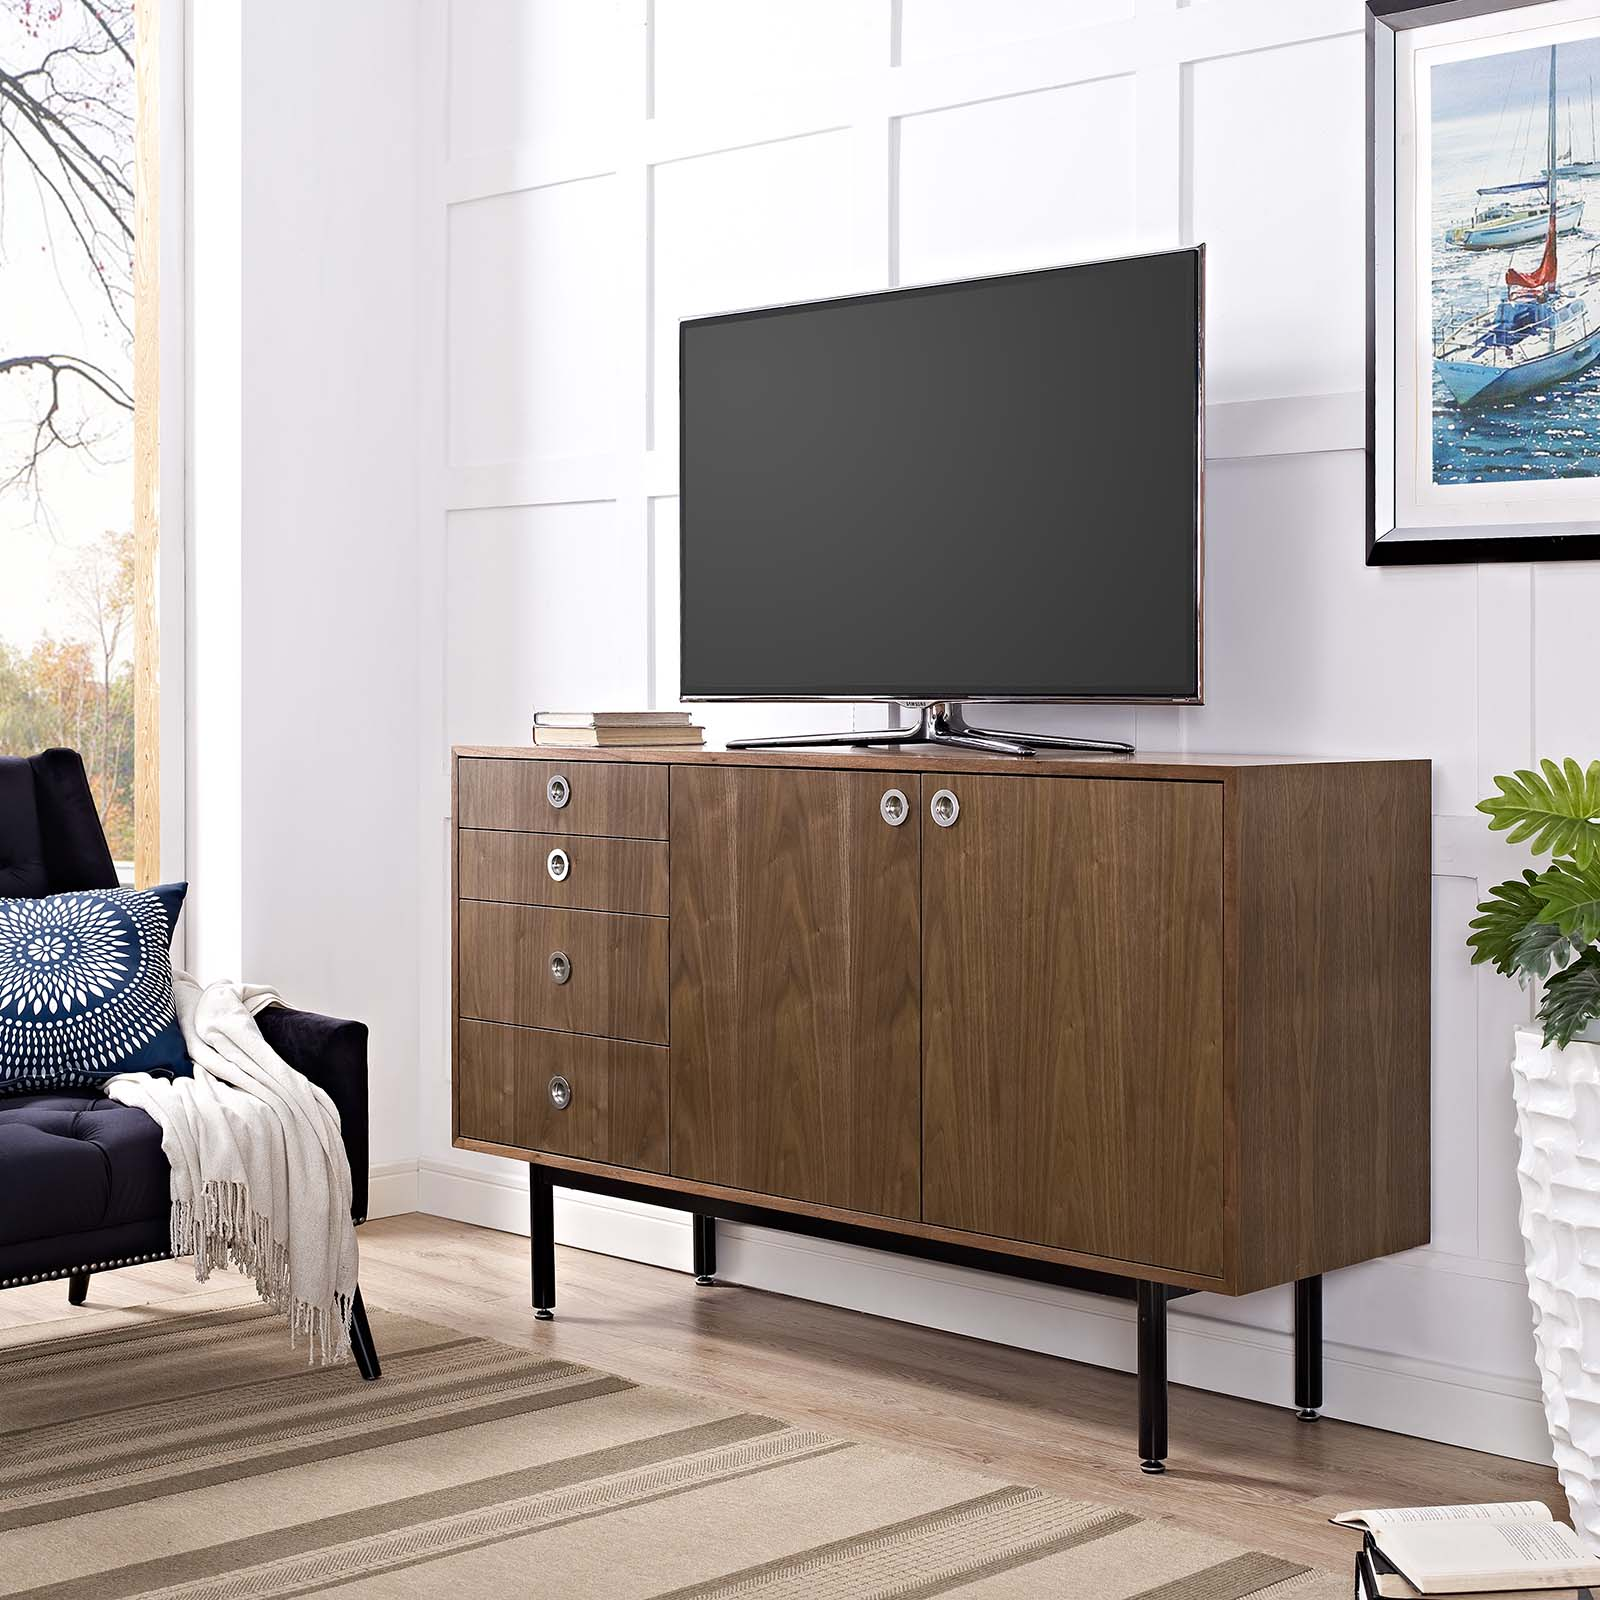 Modway Delegation Stand or Sideboard Cabinet in Walnut